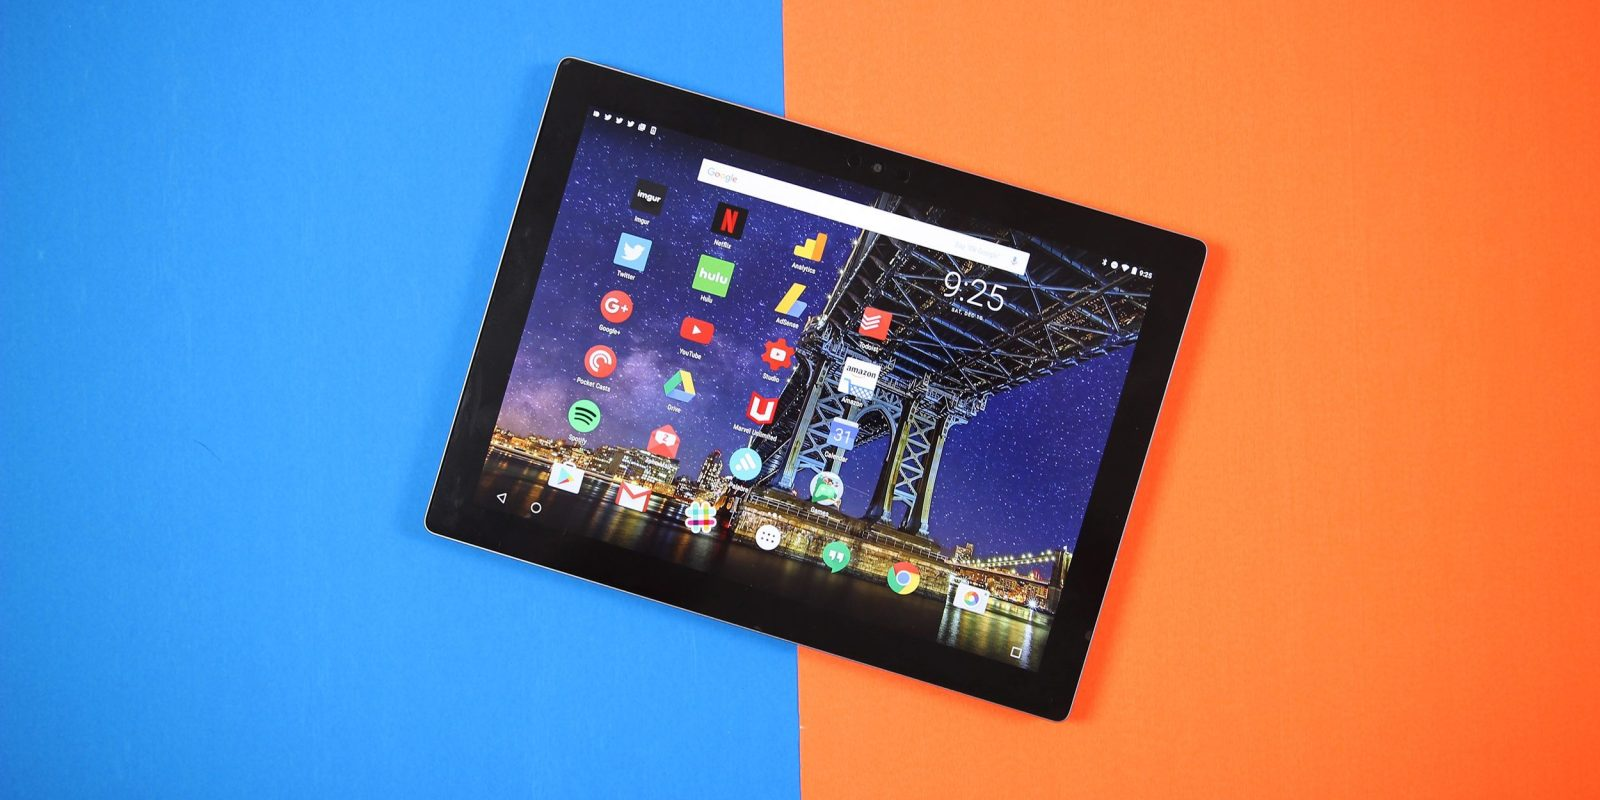 Google Pixel C gets one more Android OTA update